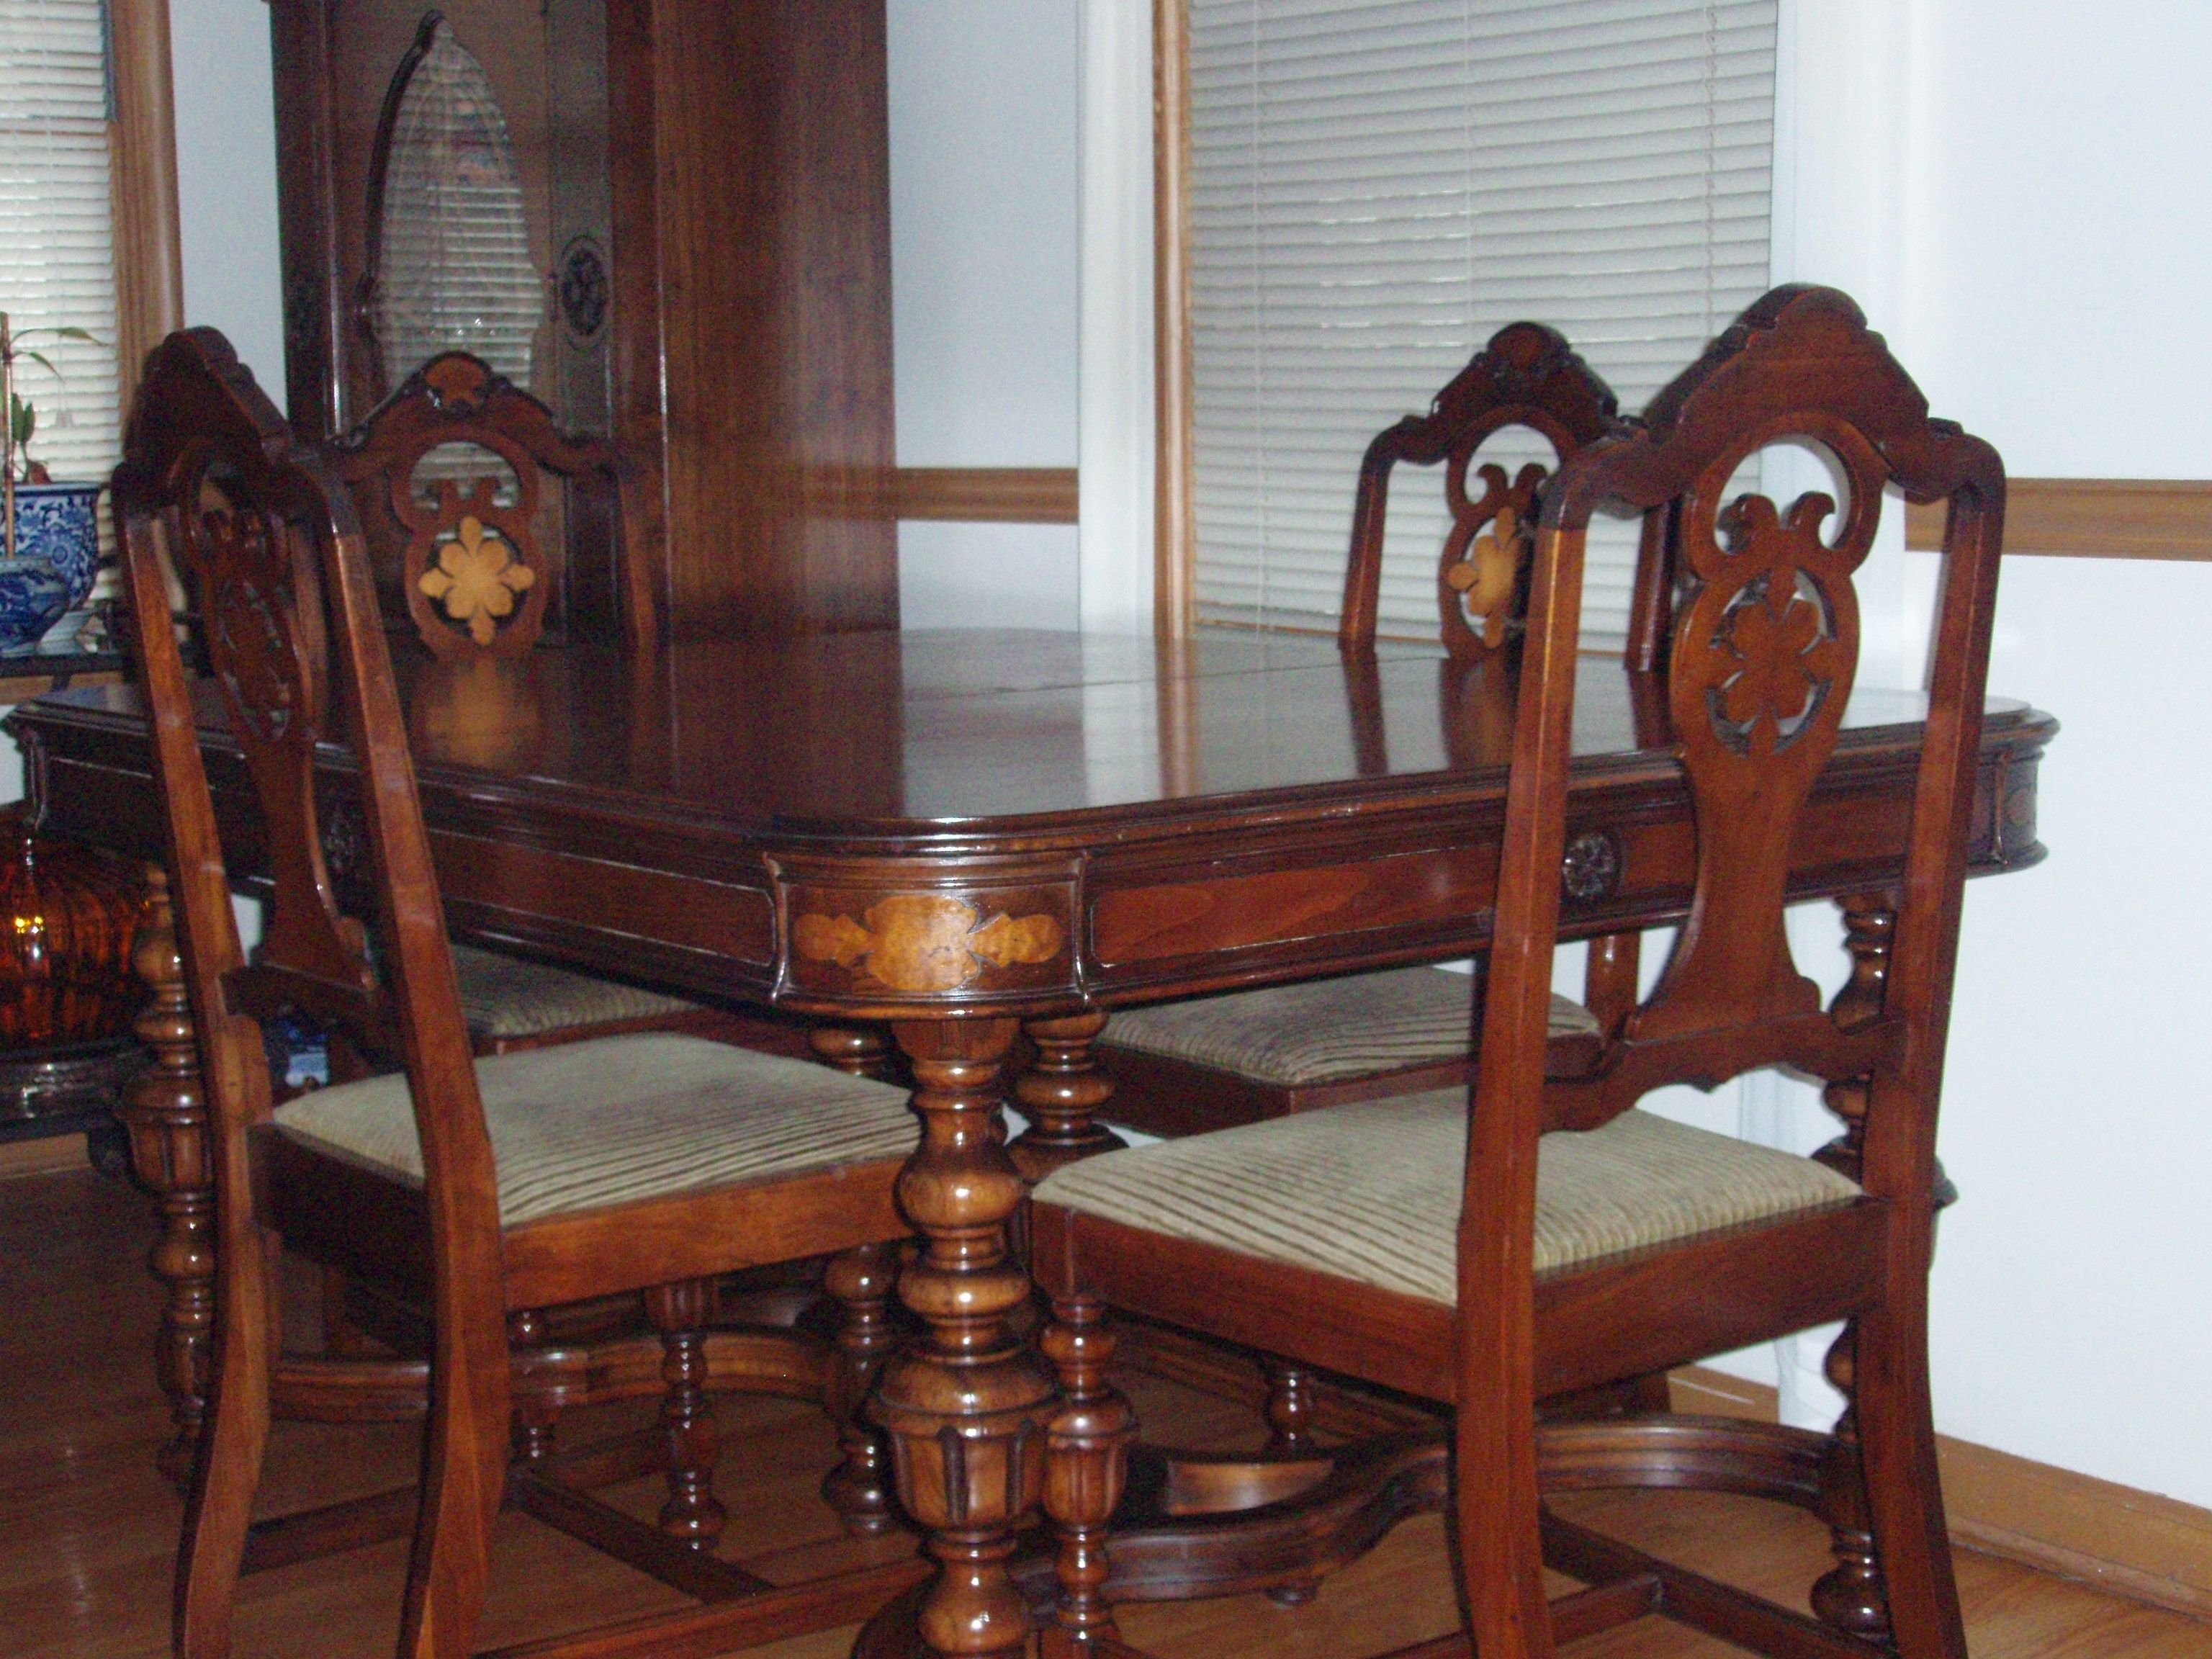 Old Dining Room Table Image Collections Ideas Furniture 26 Photos House